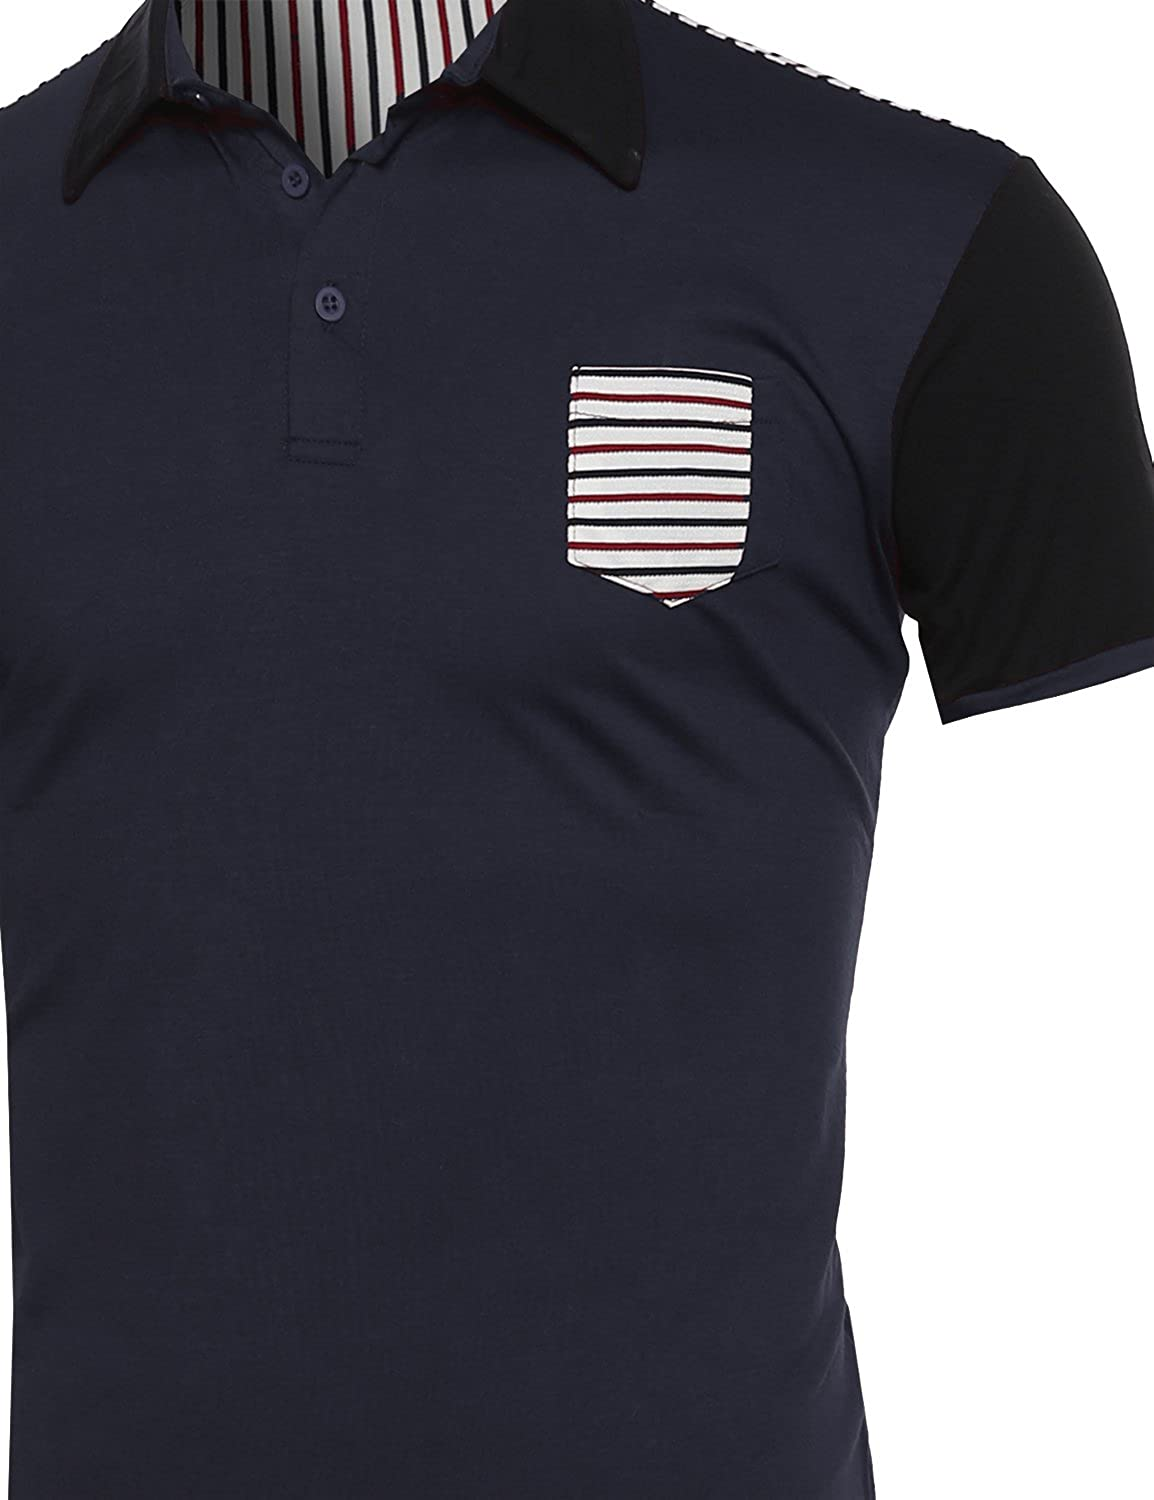 SBW Mens Basic Solid 3 Buttons Polo Shirts in